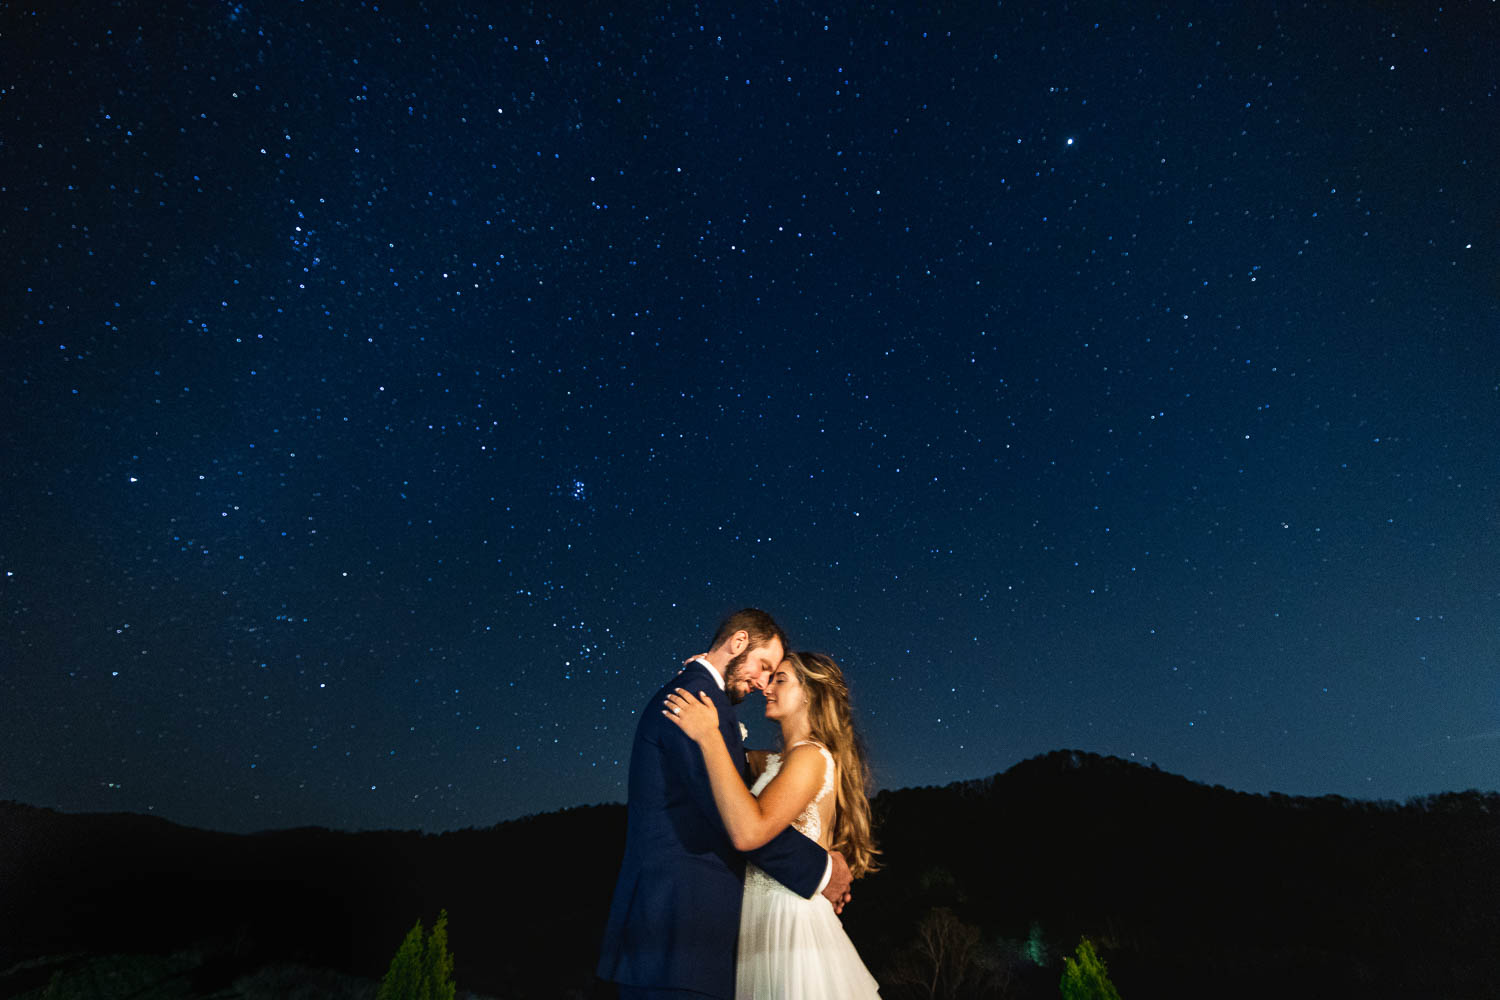 Under the stars, bride and groom photo